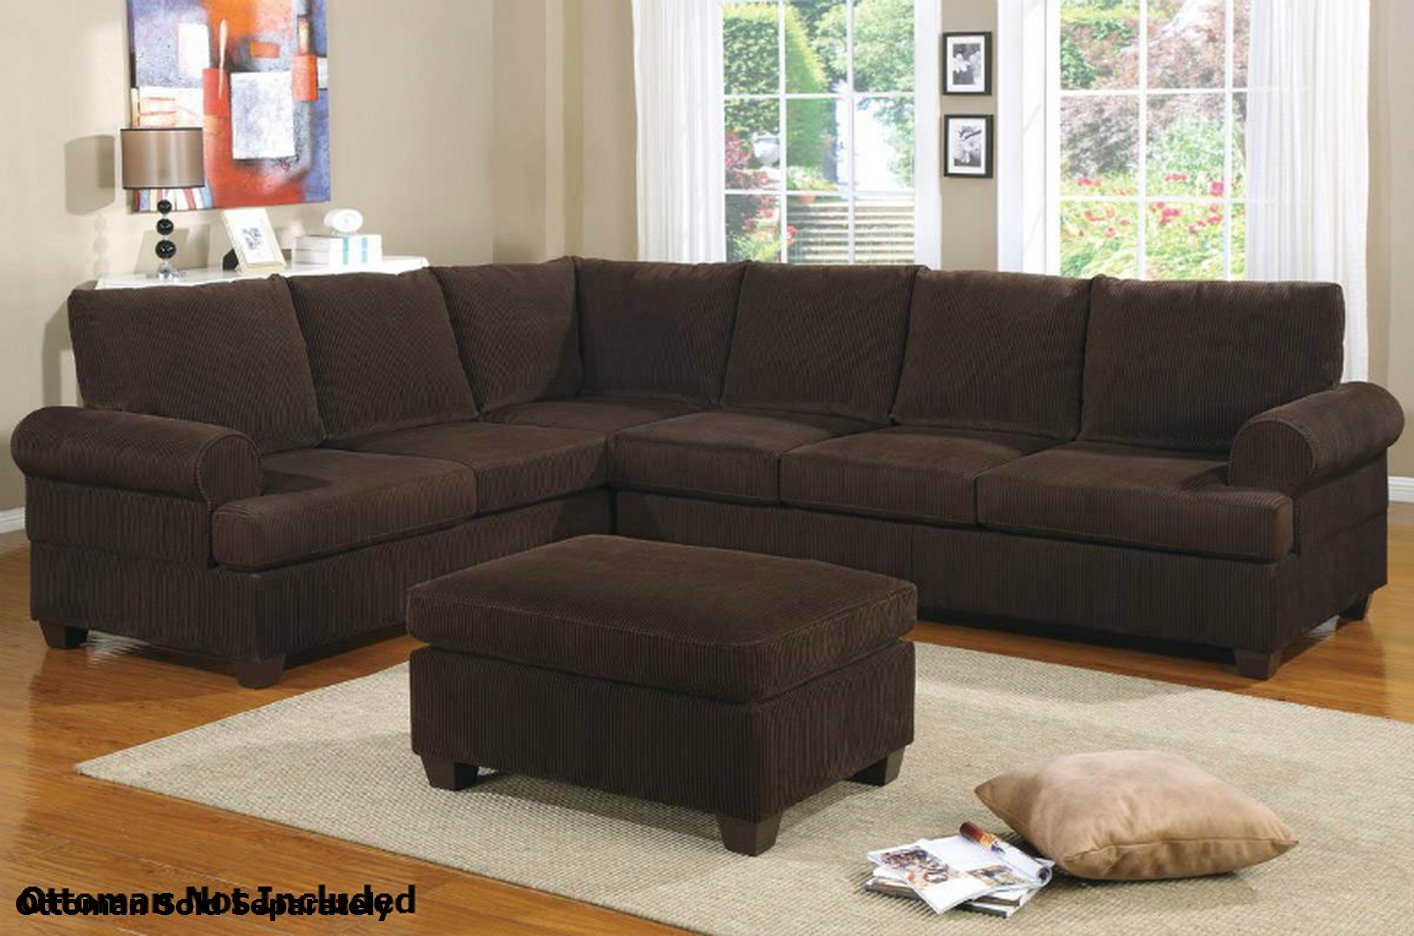 Poundex Abelone f7133 Brown Fabric Sectional Sofa - Steal ...